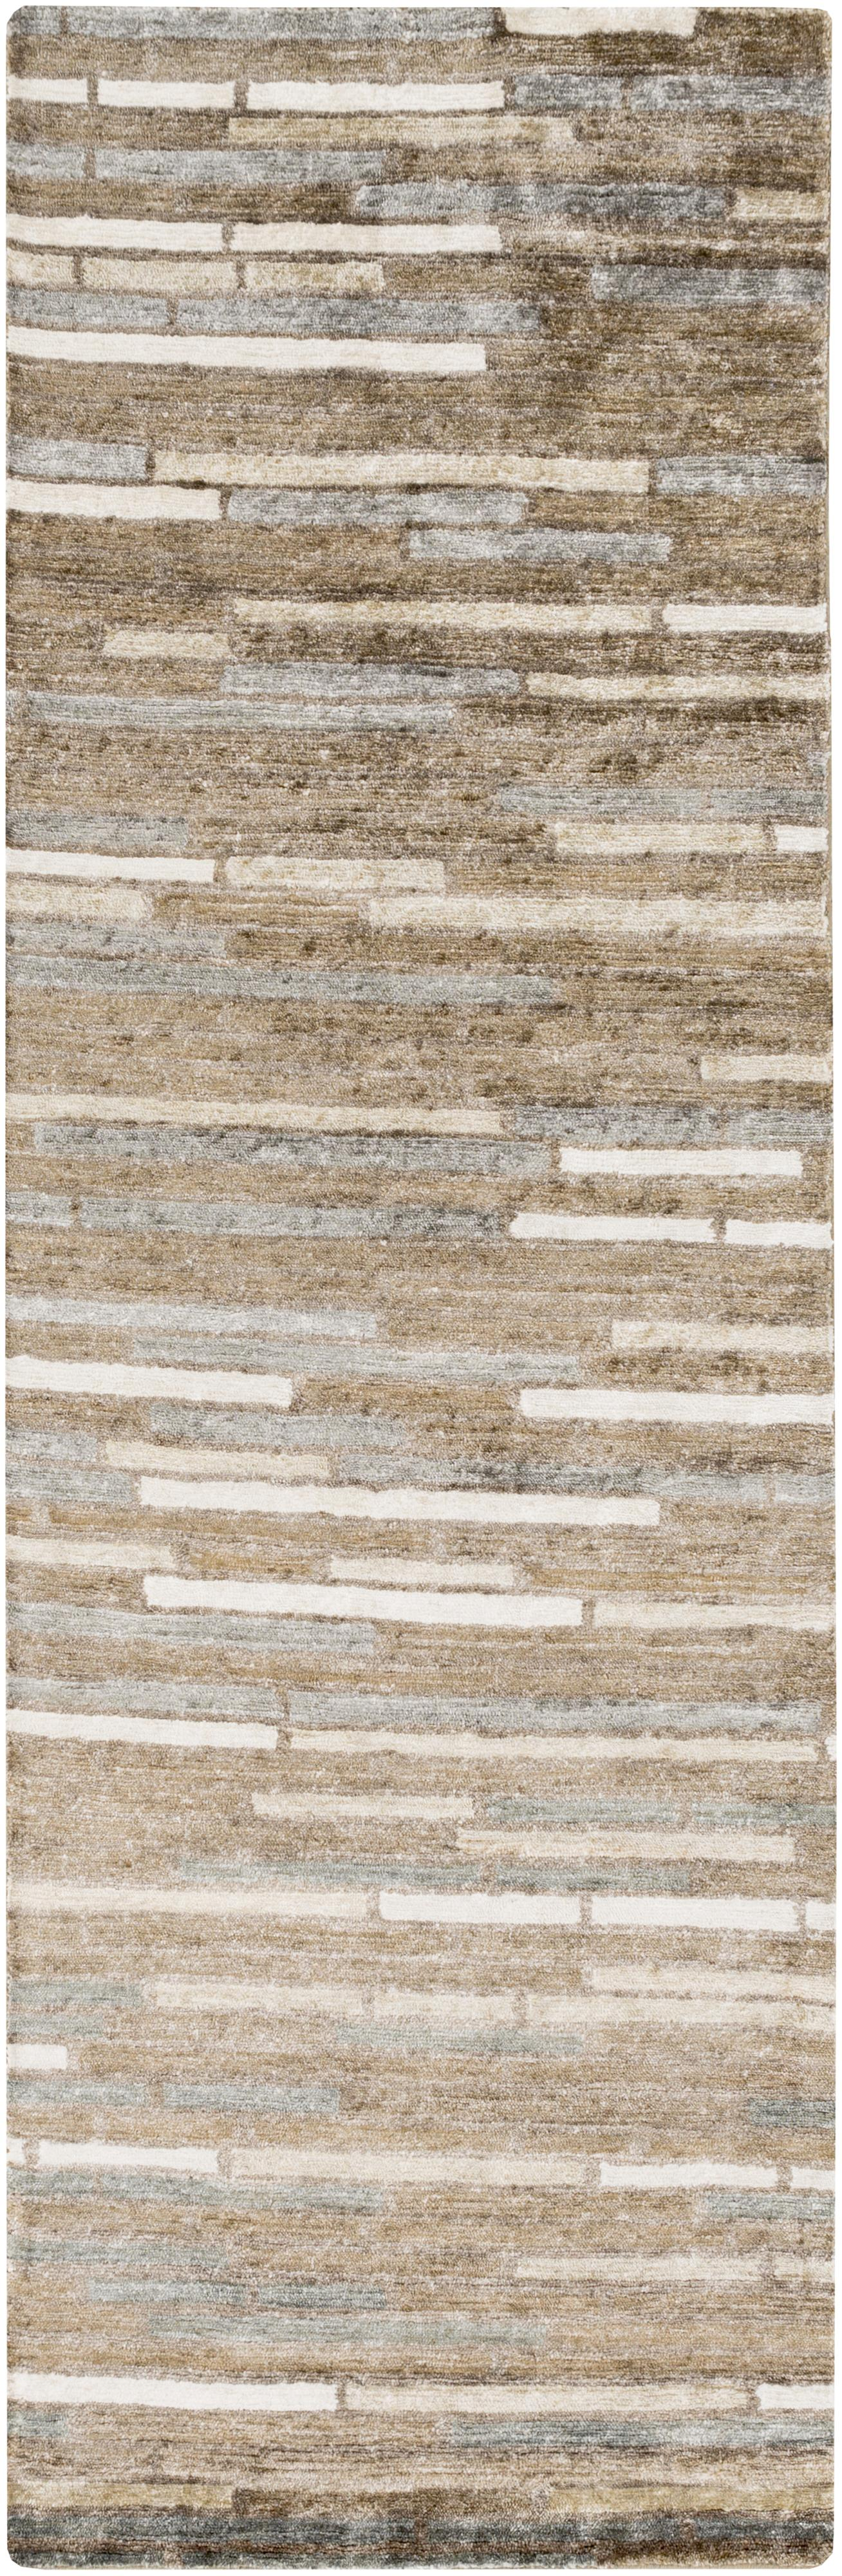 "Surya Rugs Platinum 2'6"" x 8' - Item Number: PLAT9008-268"